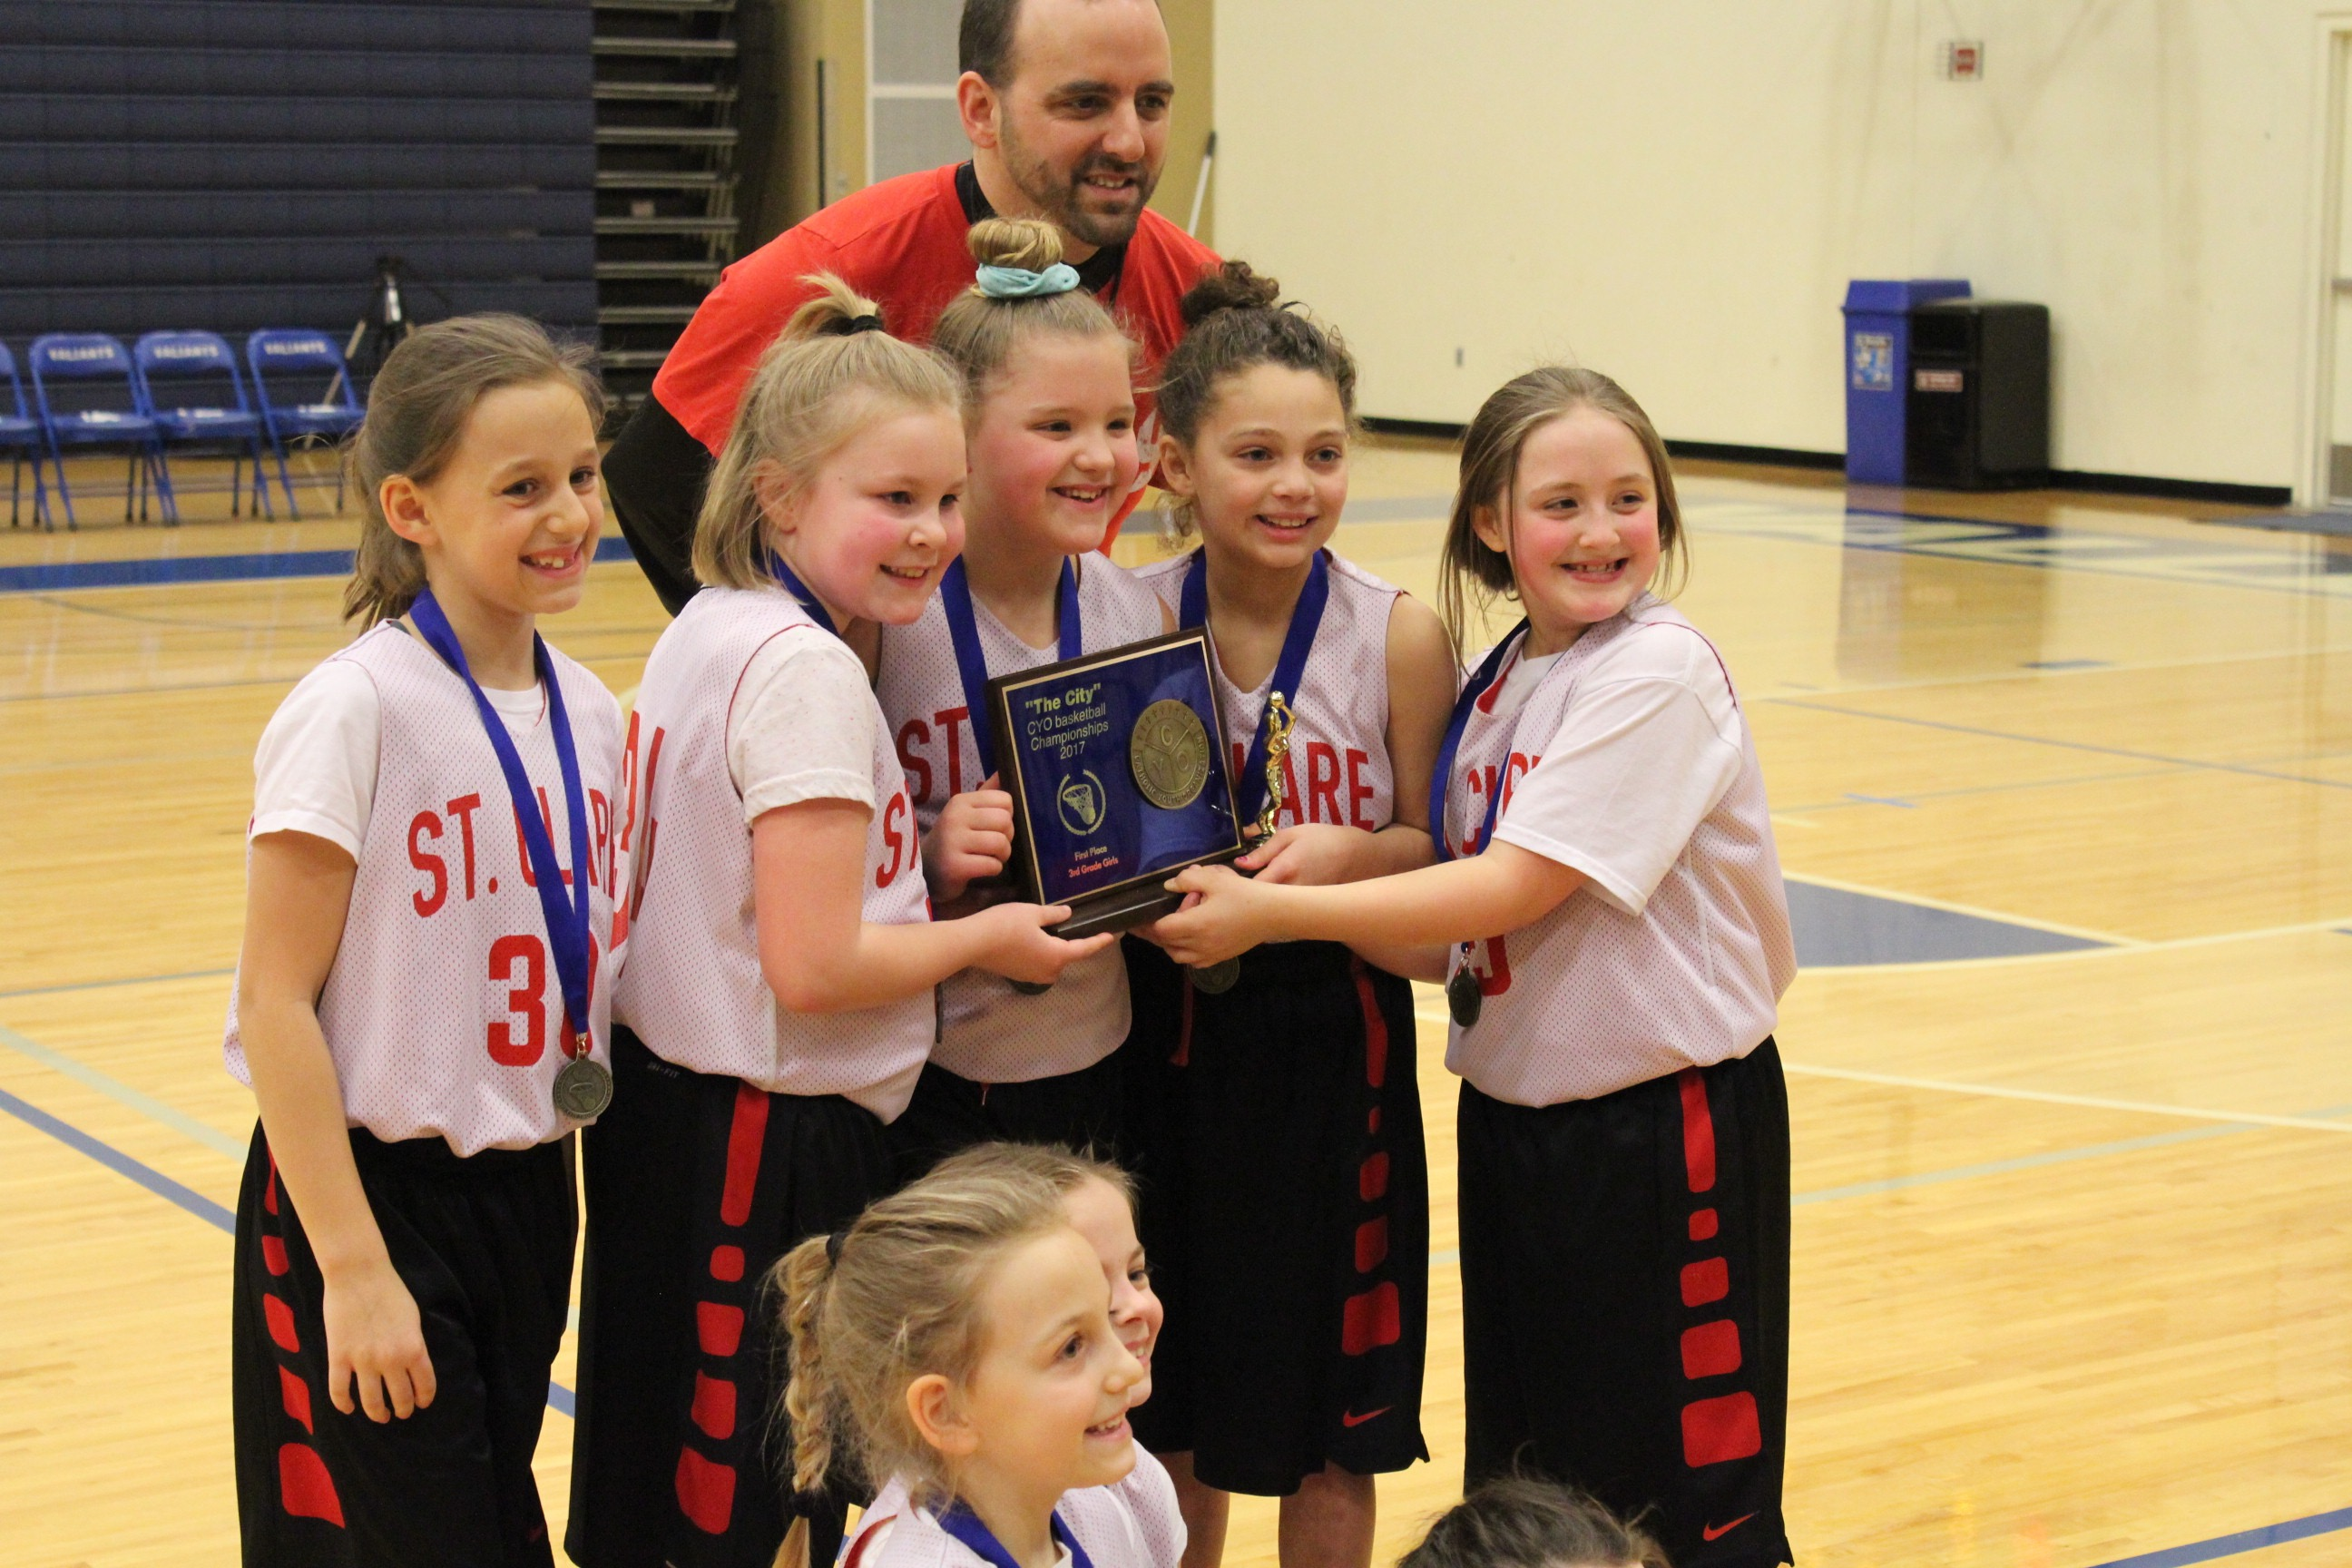 3-girls-2017-1st-st-clare